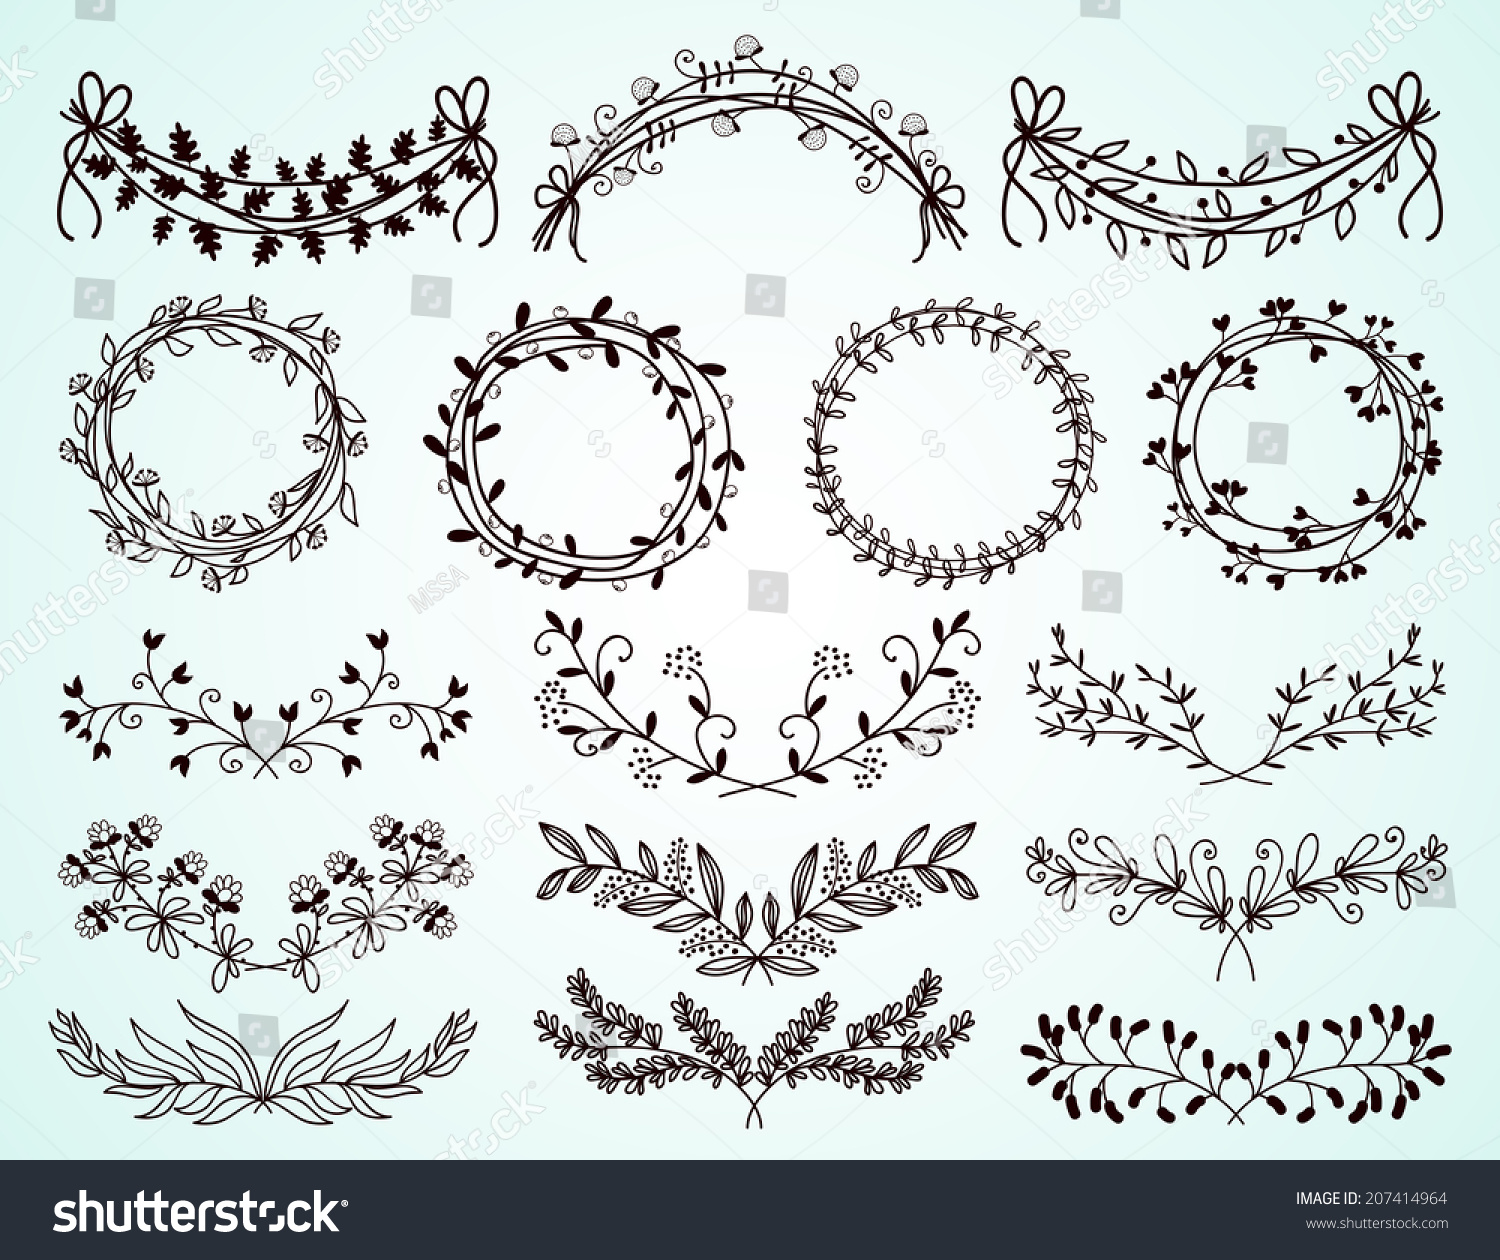 Decorative Black Flower Border Stock Image: Set Of Dainty Black And White Hand-Drawn Floral And